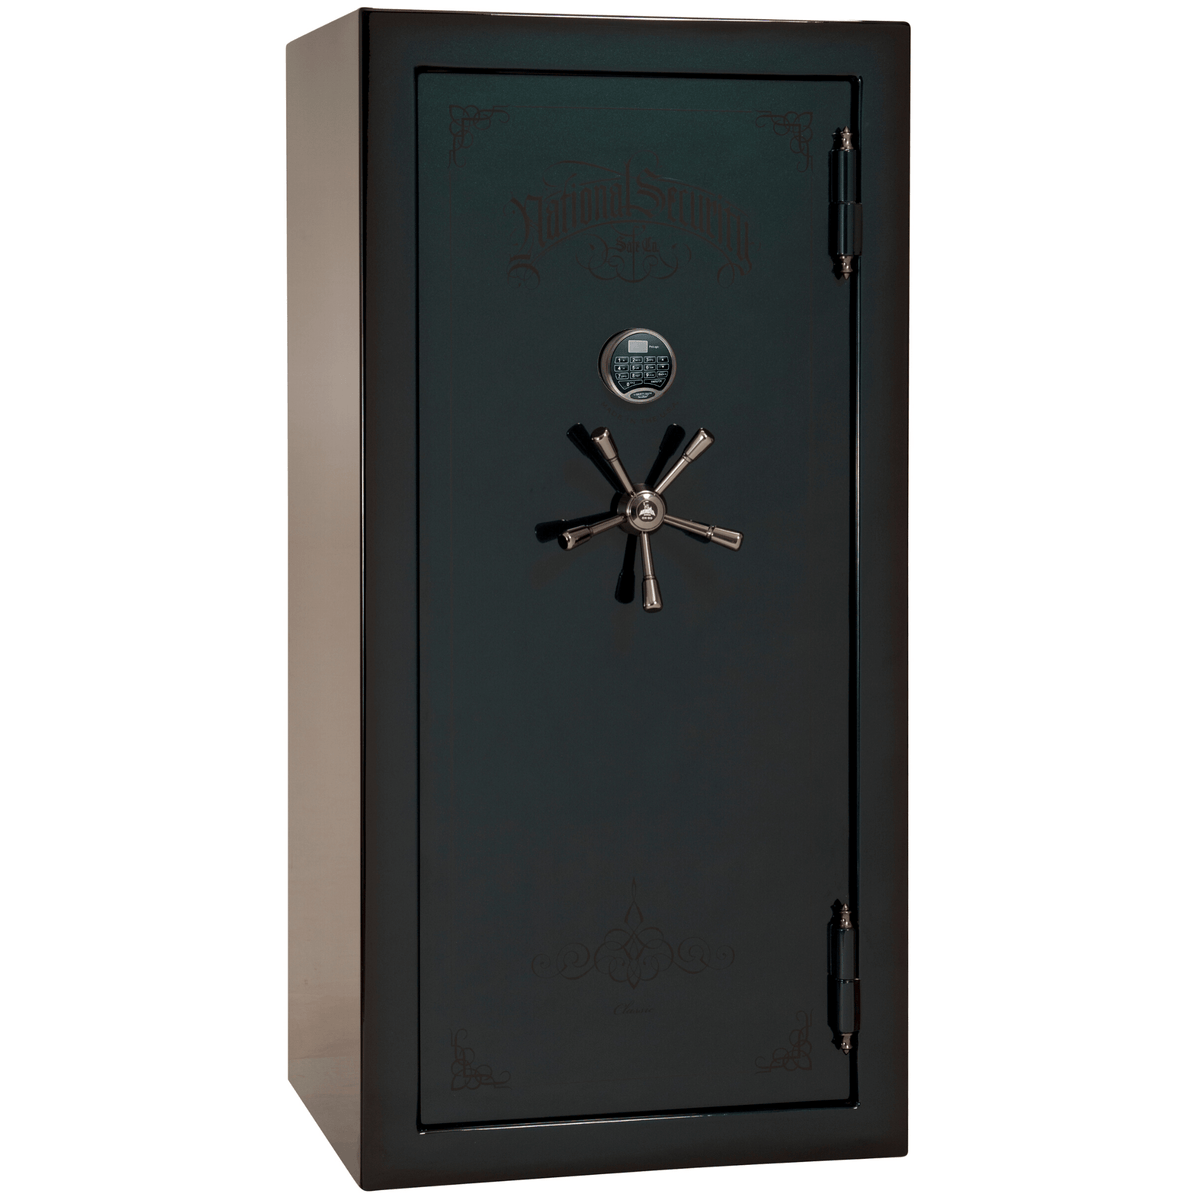 "Classic Plus | 25 | Level 7 Security | 110 Minute Fire Protection | Green 2-Tone | Black Electronic Lock | 60.5""(H) x 30""(W) x 29""(D)"